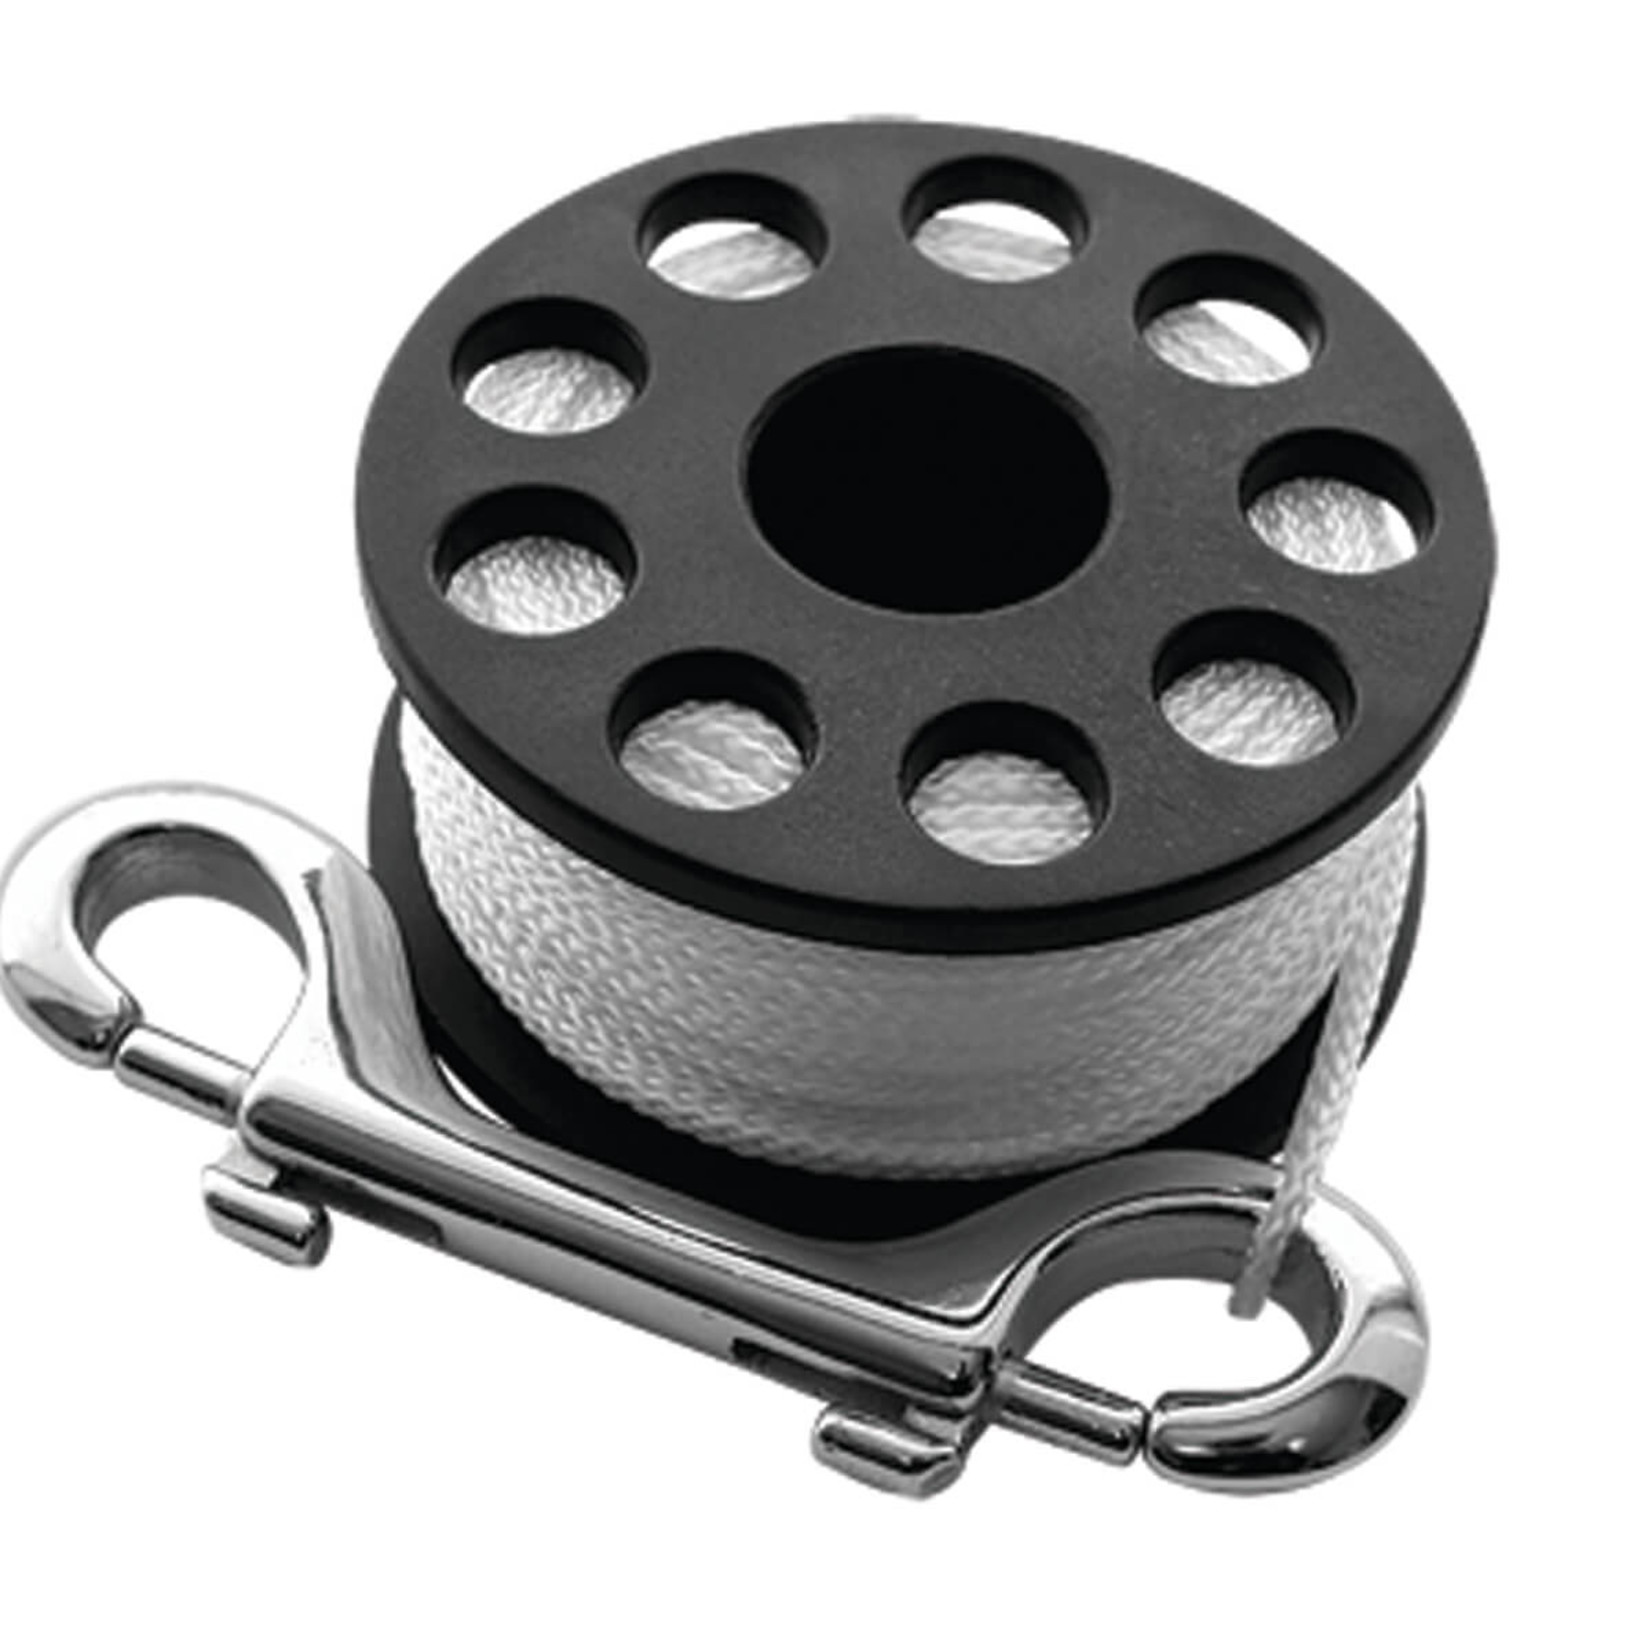 Scubapro MINI REEL SMALL, with approx. 15 m rope and brass hook